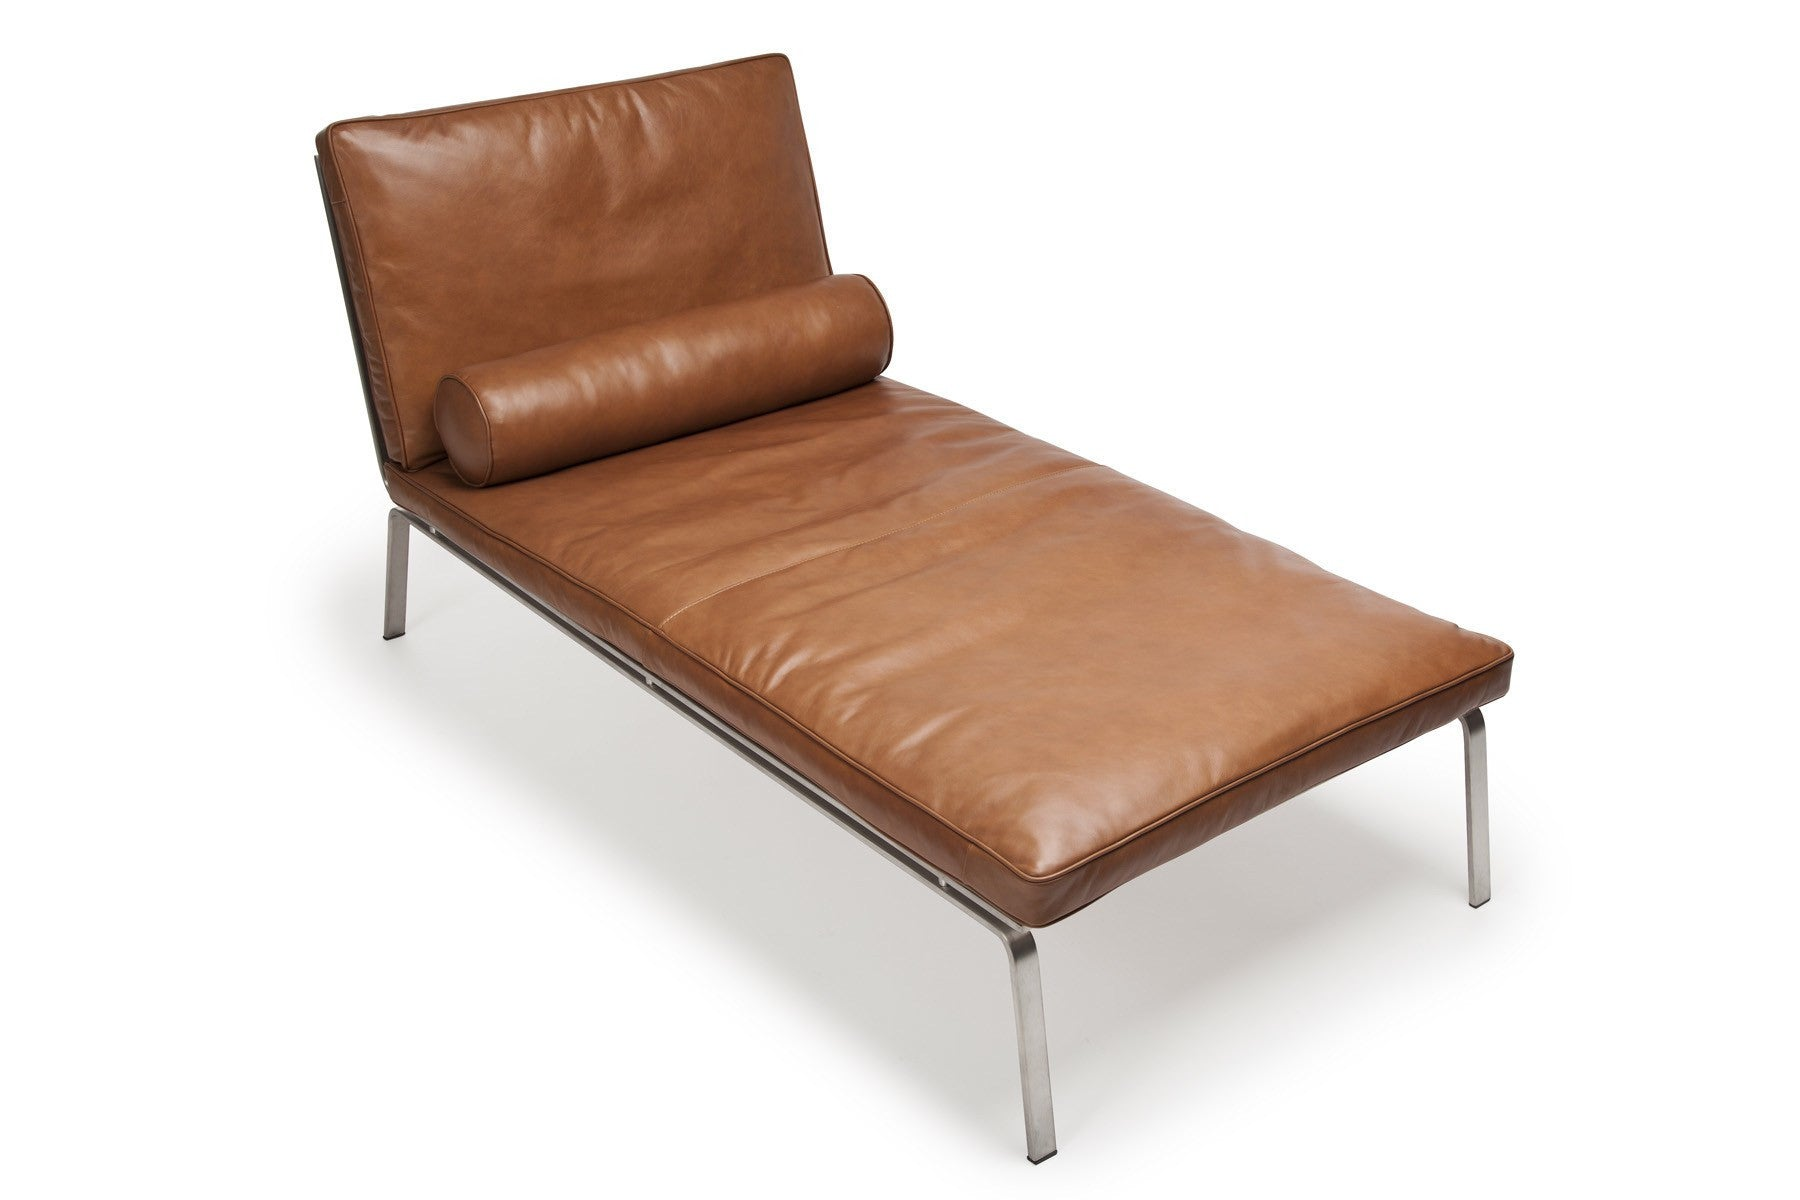 Chaise longue MAN Leather